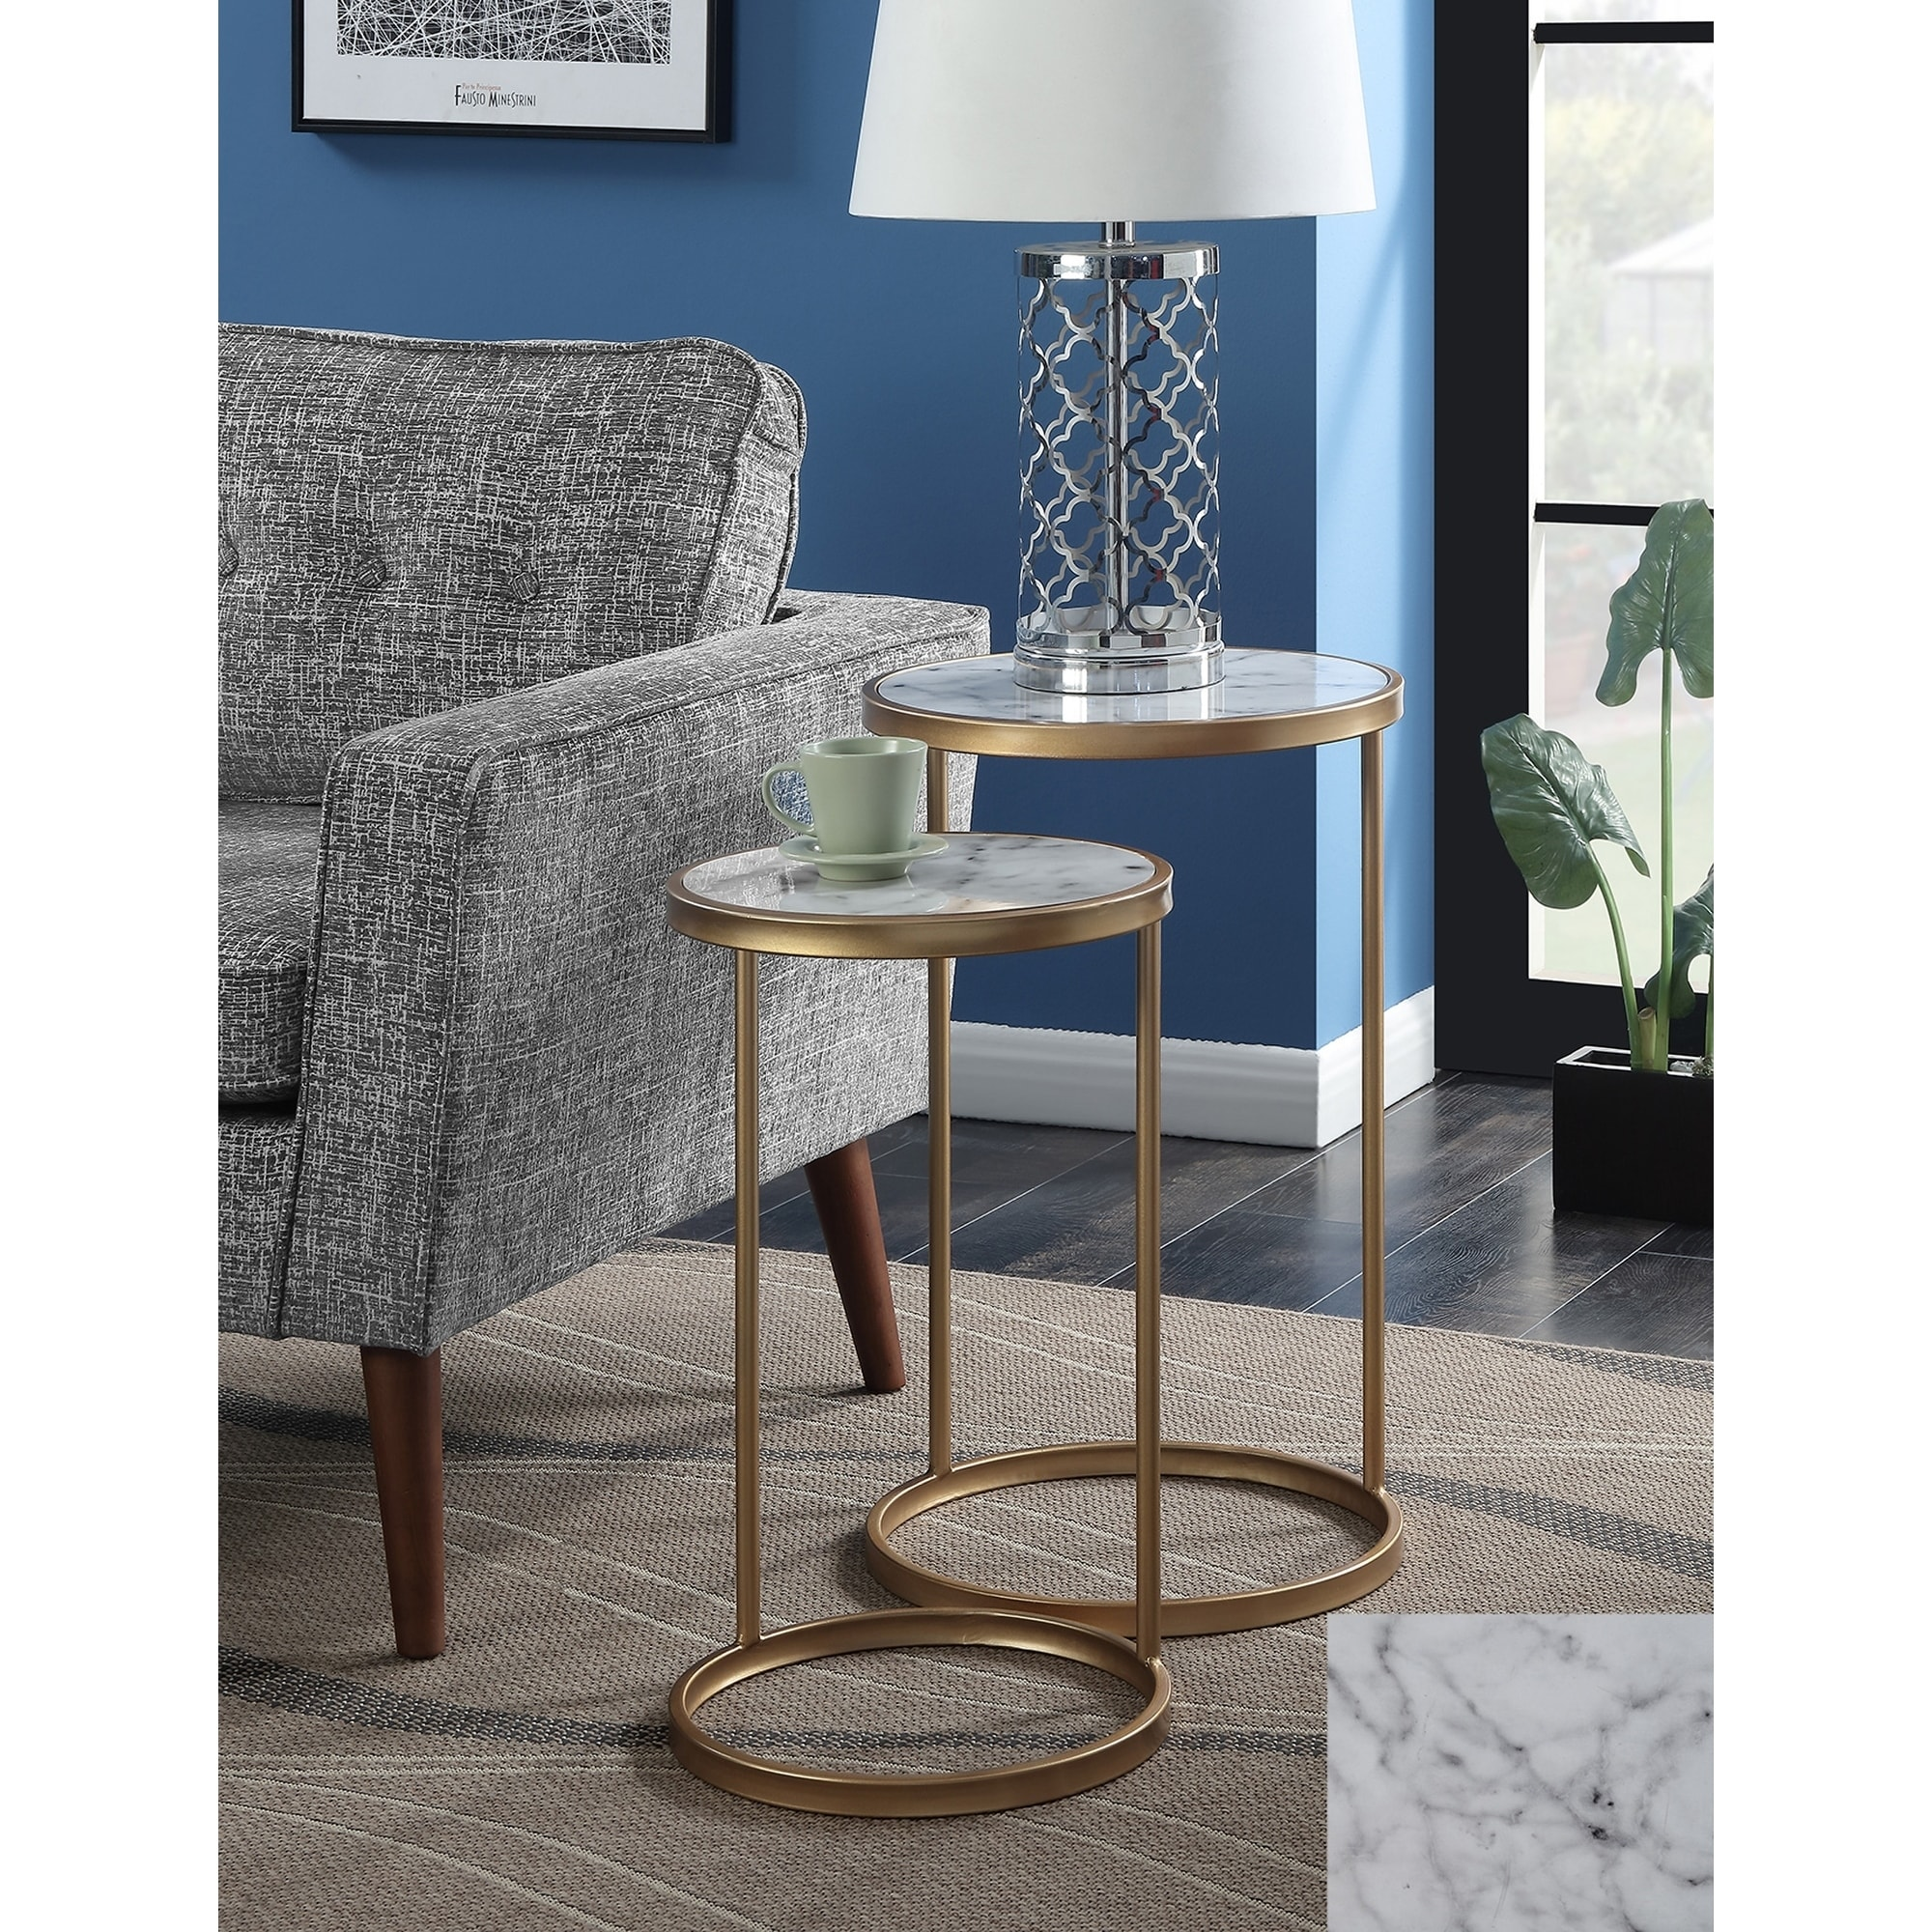 Round White Marble Milan Accent Table By World Market: Shop Convenience Concepts Gold Coast Faux Marble Nesting